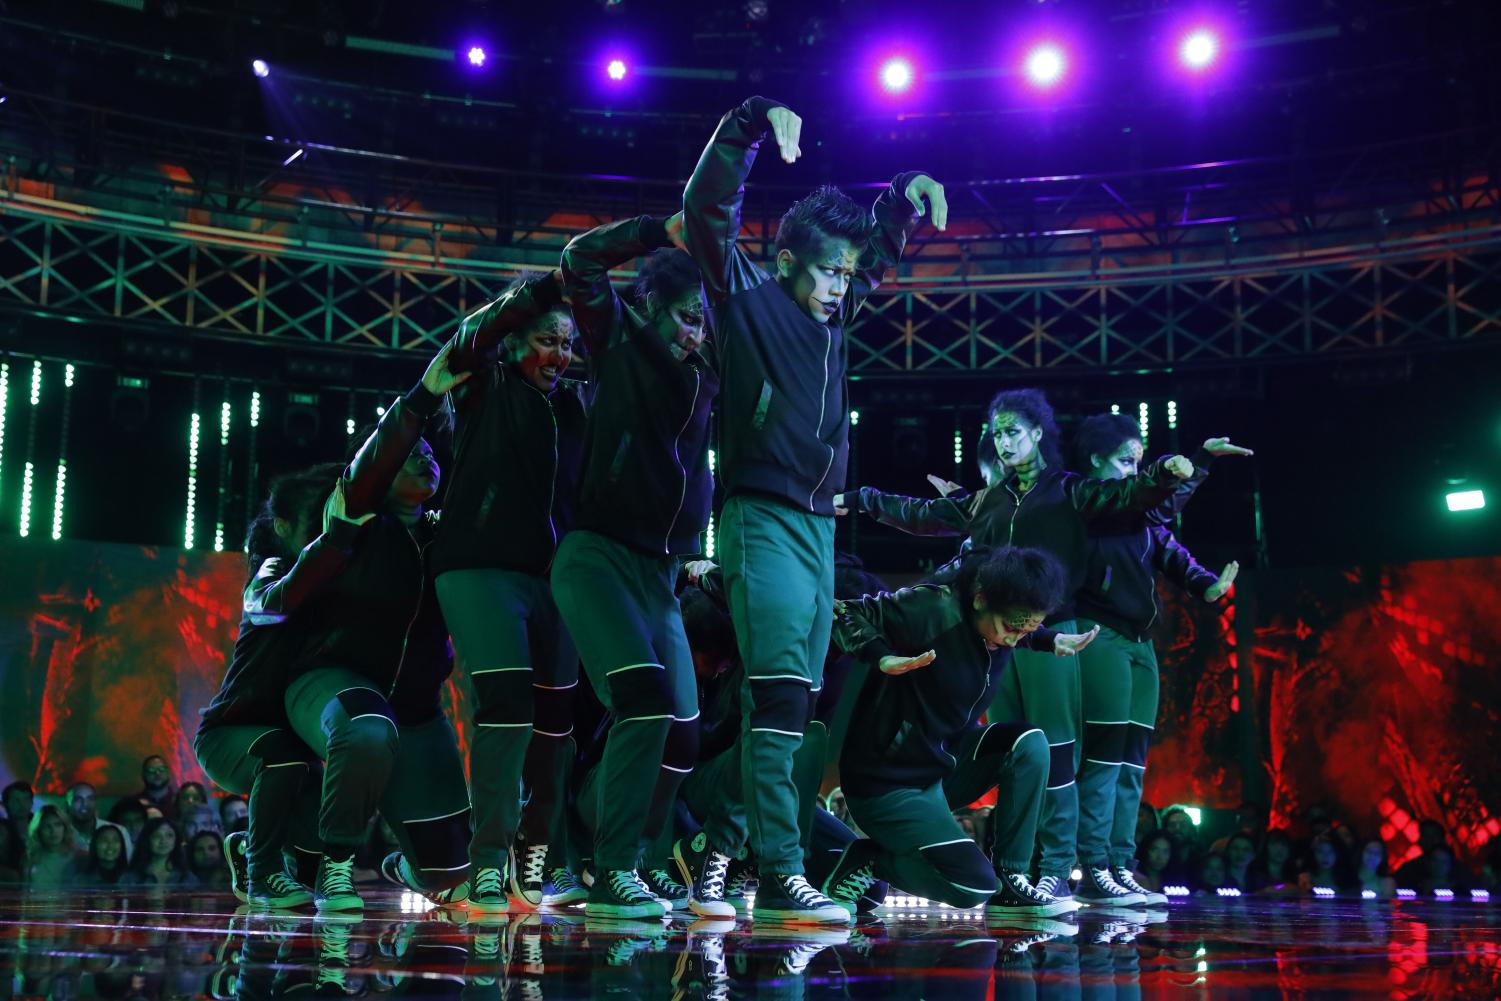 Members of the West Springfield Dance Team perform on World of Dance, an NBC competition dance show. Their appearance was the culmination of months of work, and their advancement to the next level was particularly notable as they were one of the first public high school dance teams on the show.